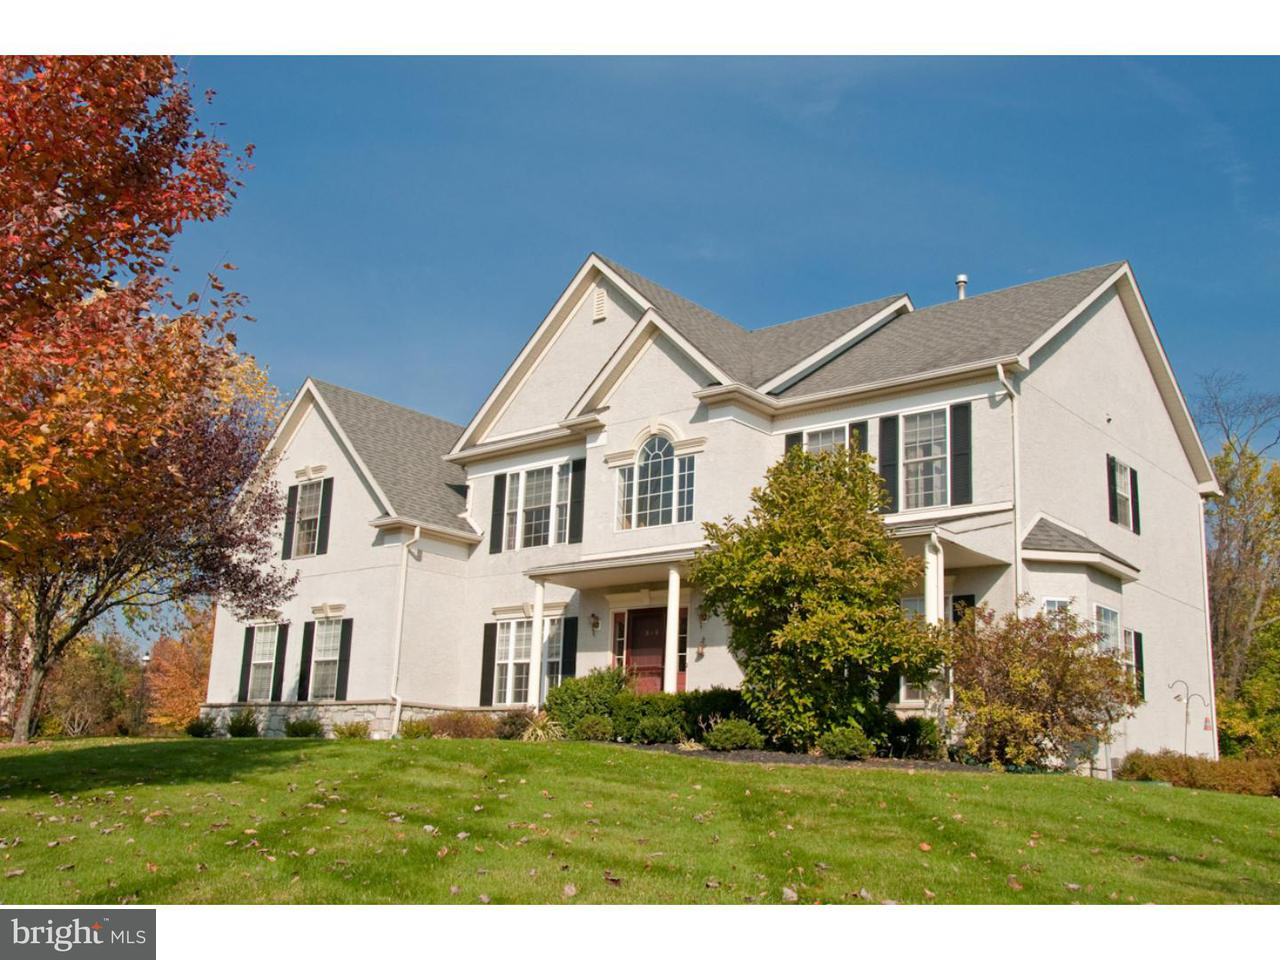 Single Family Home for Sale at 31 CAMERON Court Exton, Pennsylvania 19341 United States